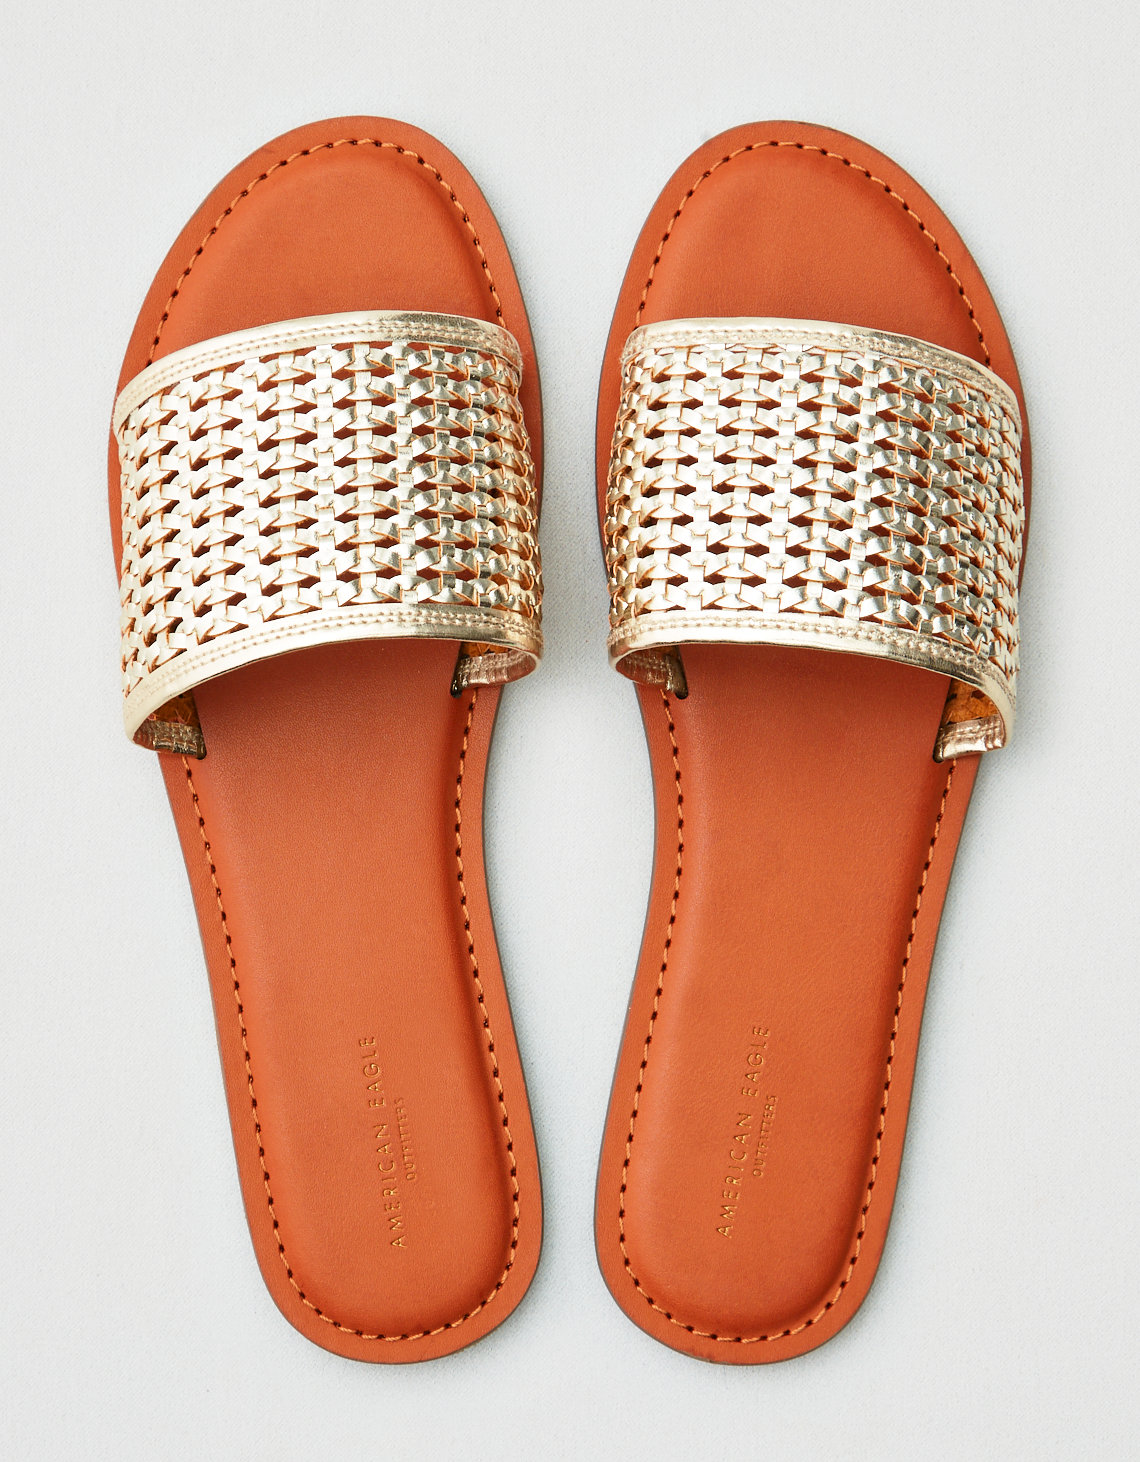 54e182271 AE Woven Strap Sandal. Placeholder image. Product Image